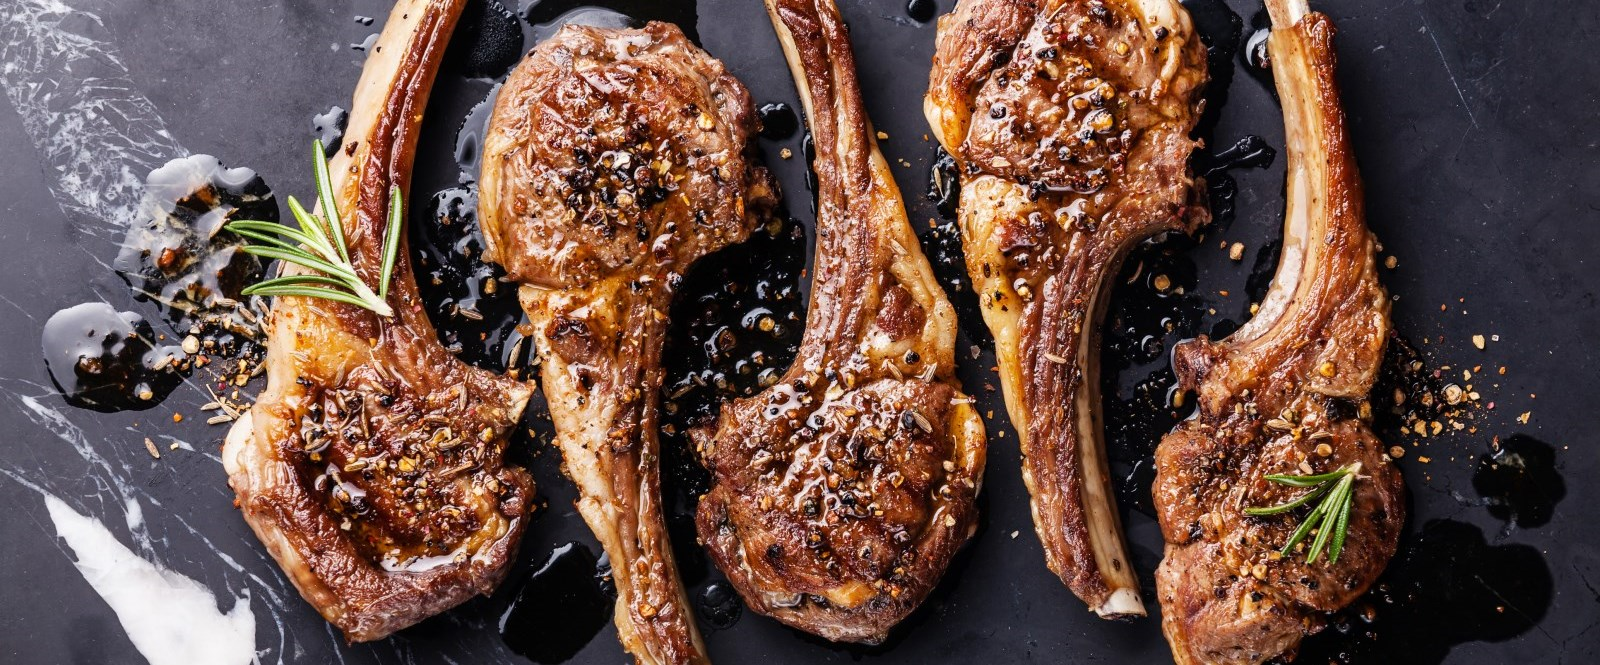 seasoned lamb chops on a marble slab with rosemary